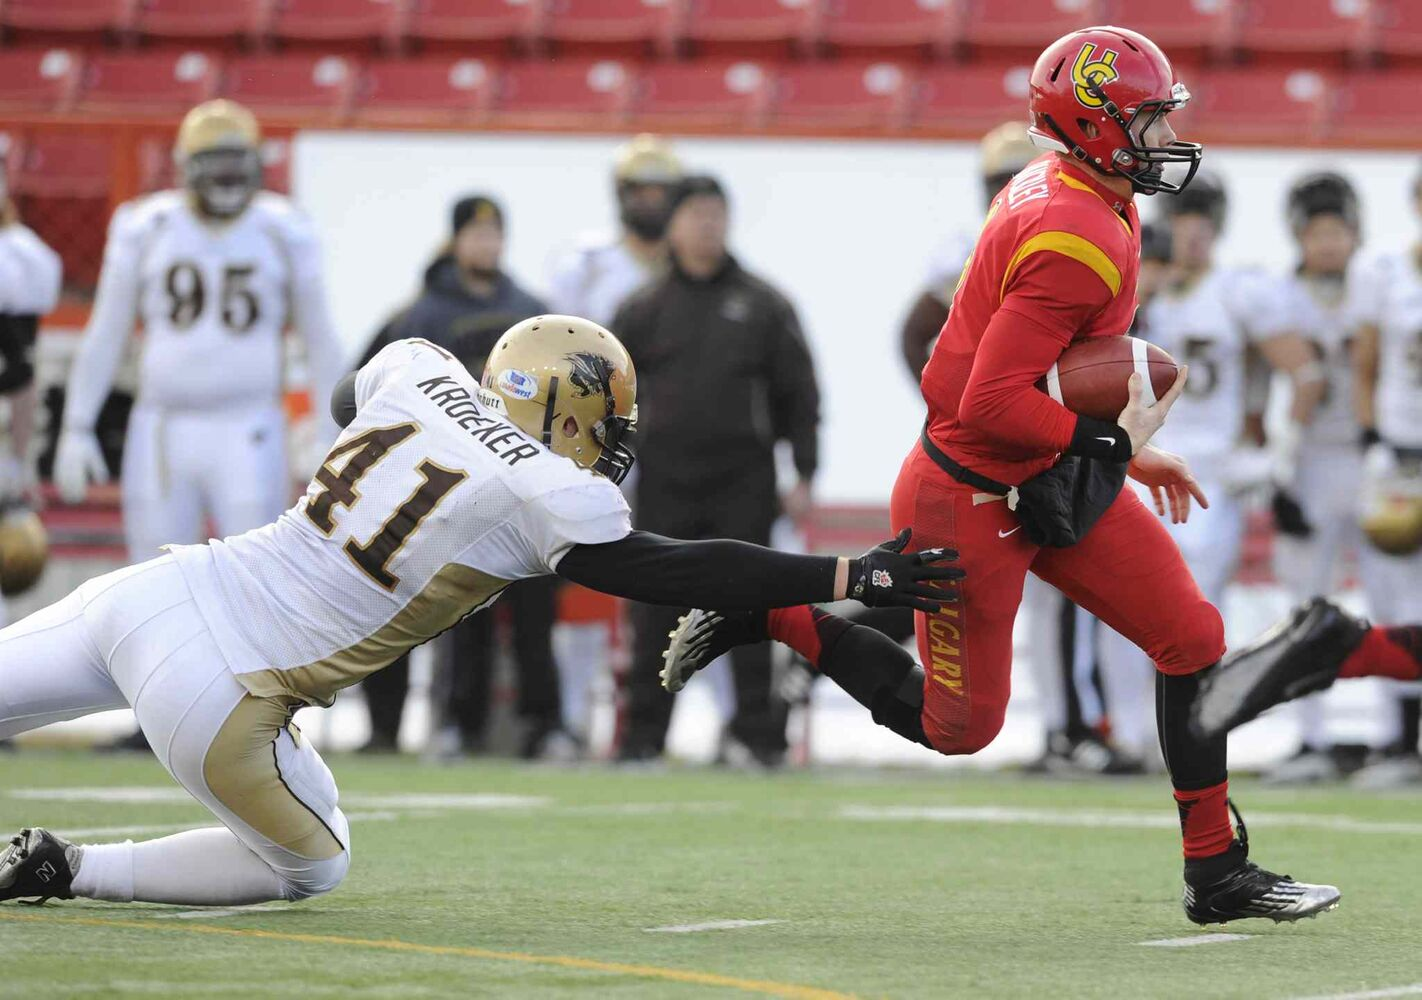 University of Calgary Dinos quarterback Andrew Buckley (right) breaks away from Lauren Kroeker of the University of Manitoba Bisons during the first half of Hardy Cup CIS football action in Calgary Saturday.